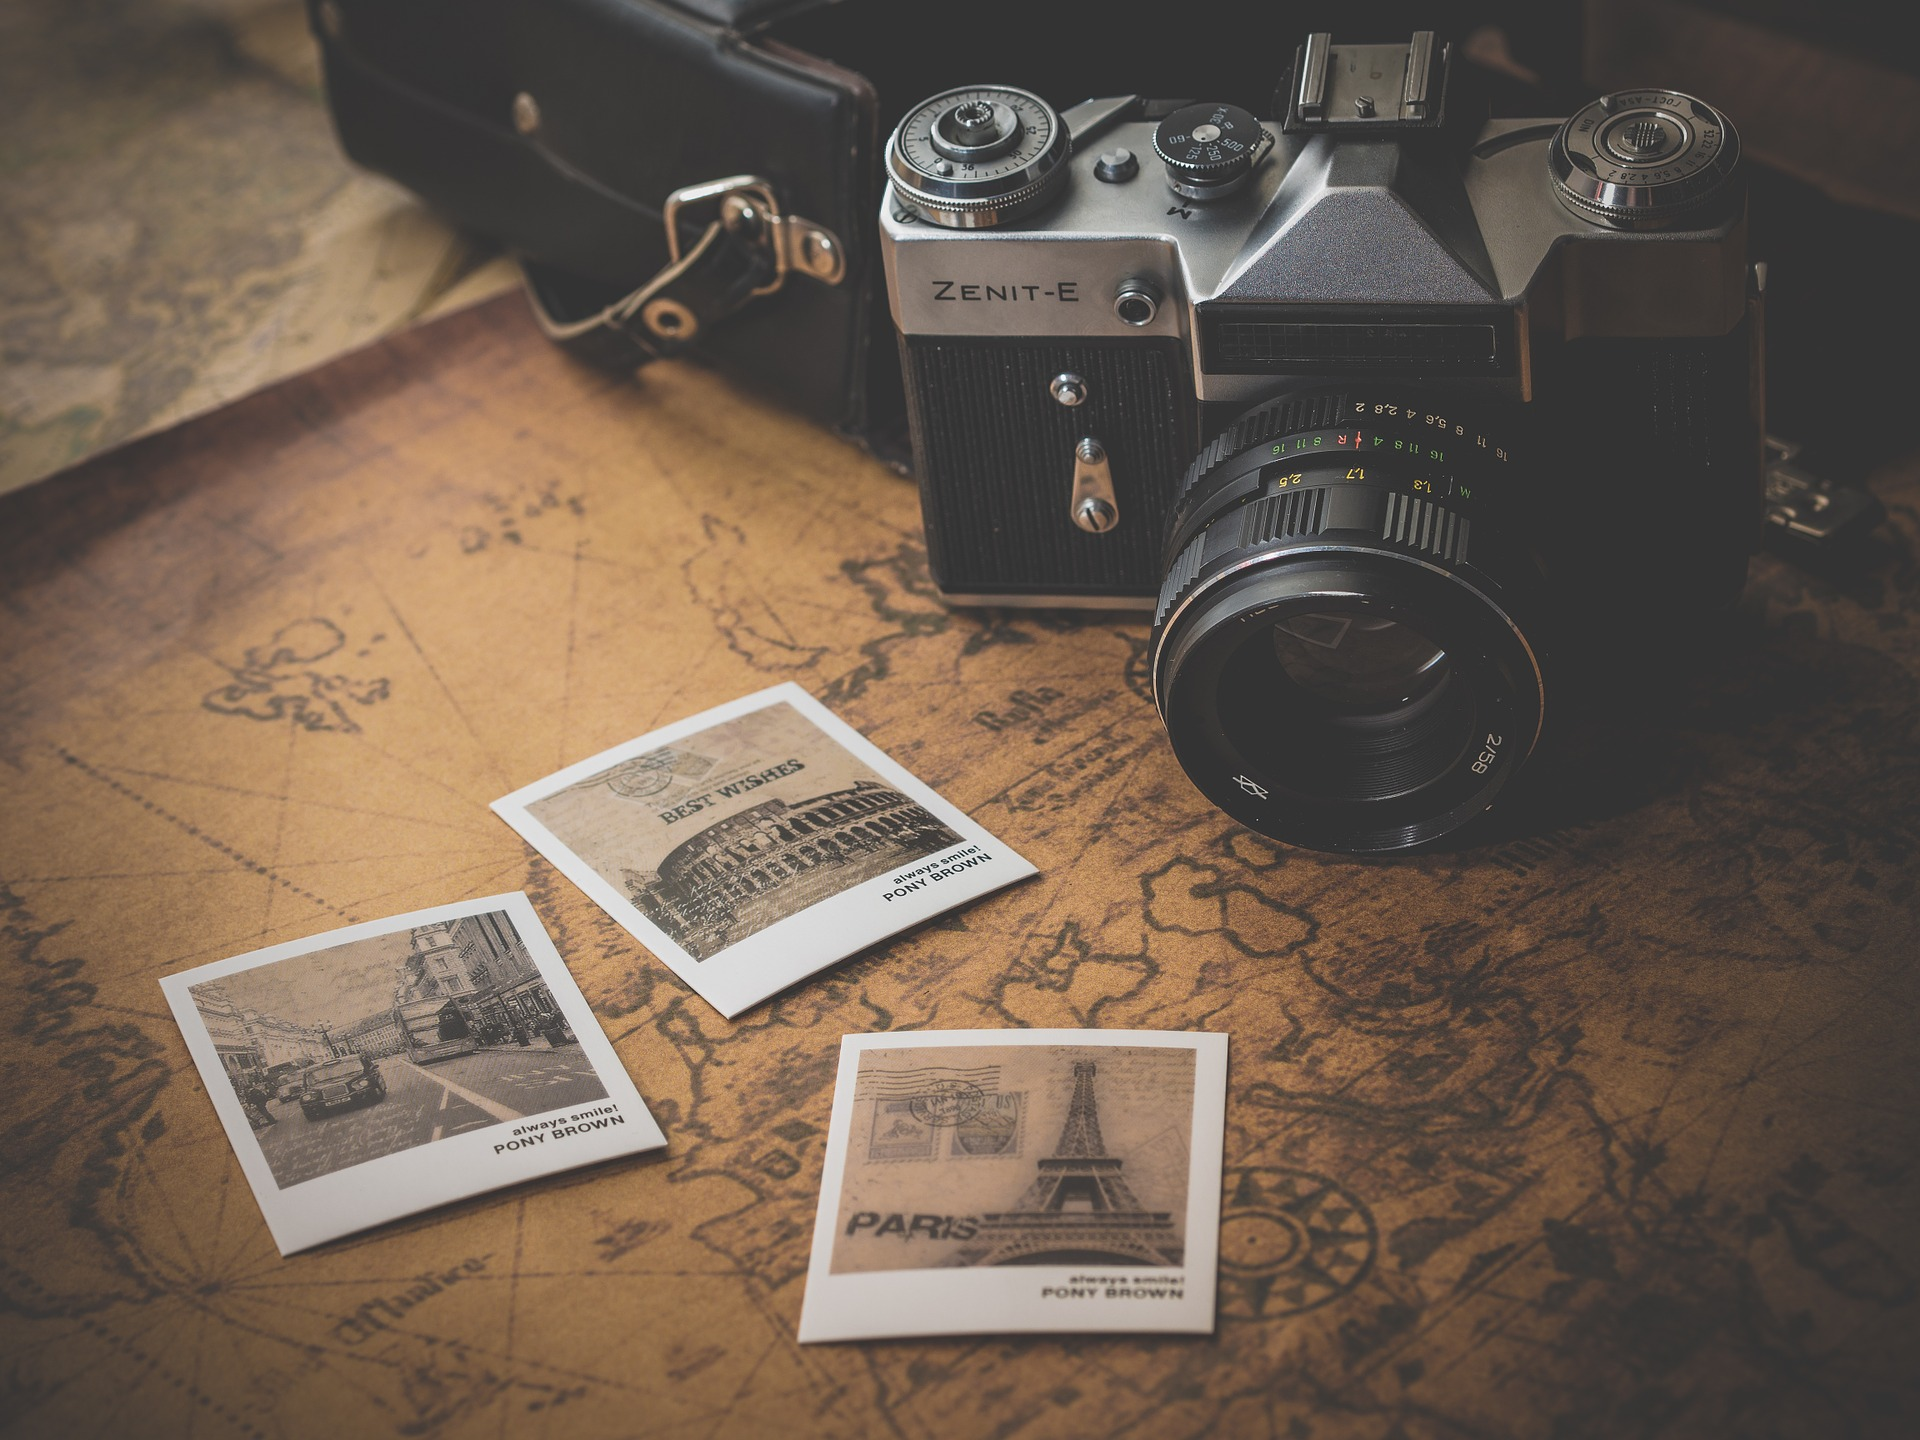 camera-and-pictures-on-old-map-CFAR-and-trip-insurance